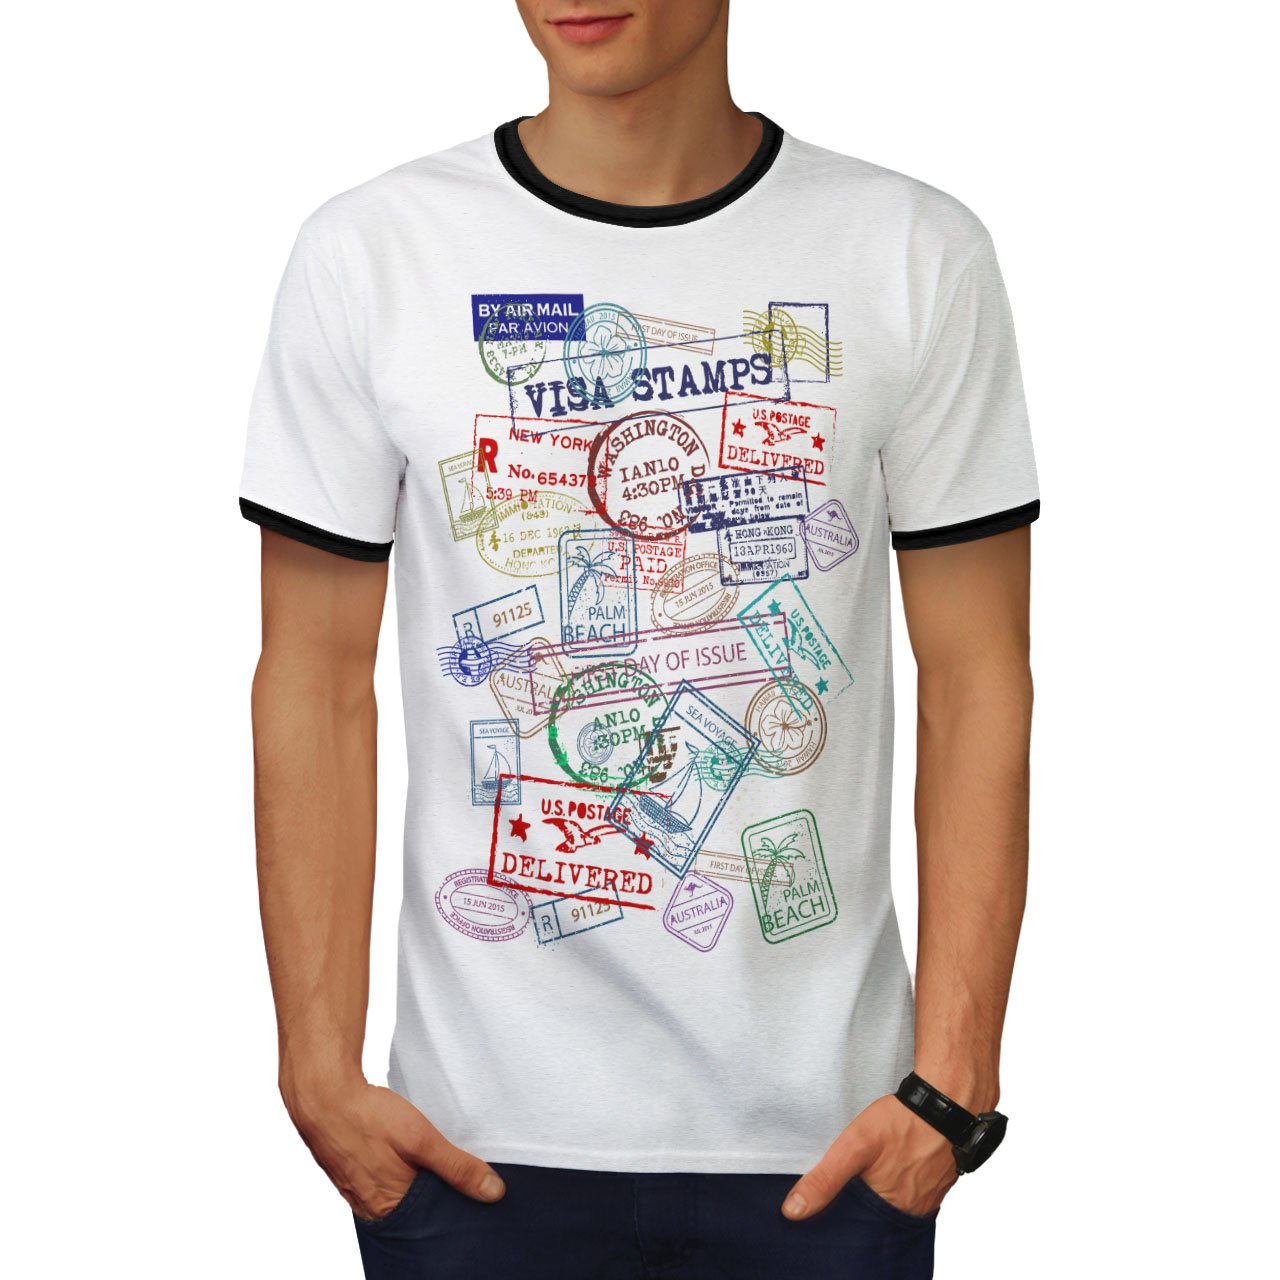 e4306c8a8 We've taken great care to make sure that the material of this Ringer T-shirt  is soft on the skin, ensuring maximum comfort after long periods of wear.